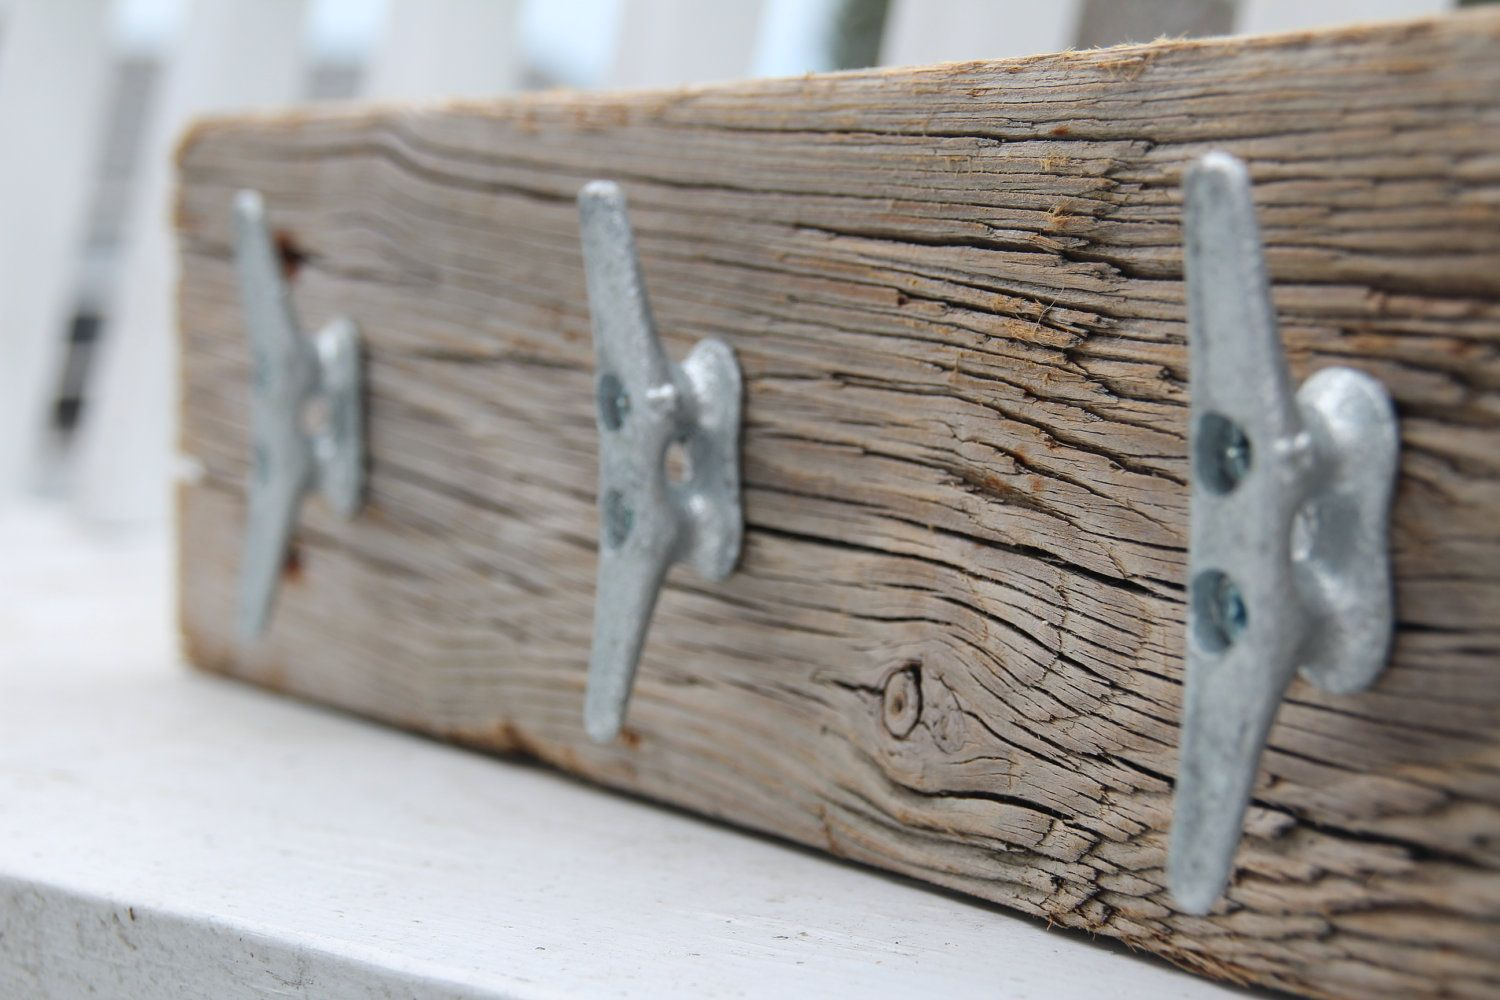 Nautical Coat Rack With Boat Cleats Made From By Docksidecottage 39 99 Via Etsy Cute For A Deck Boat Cleats Nautical Boat